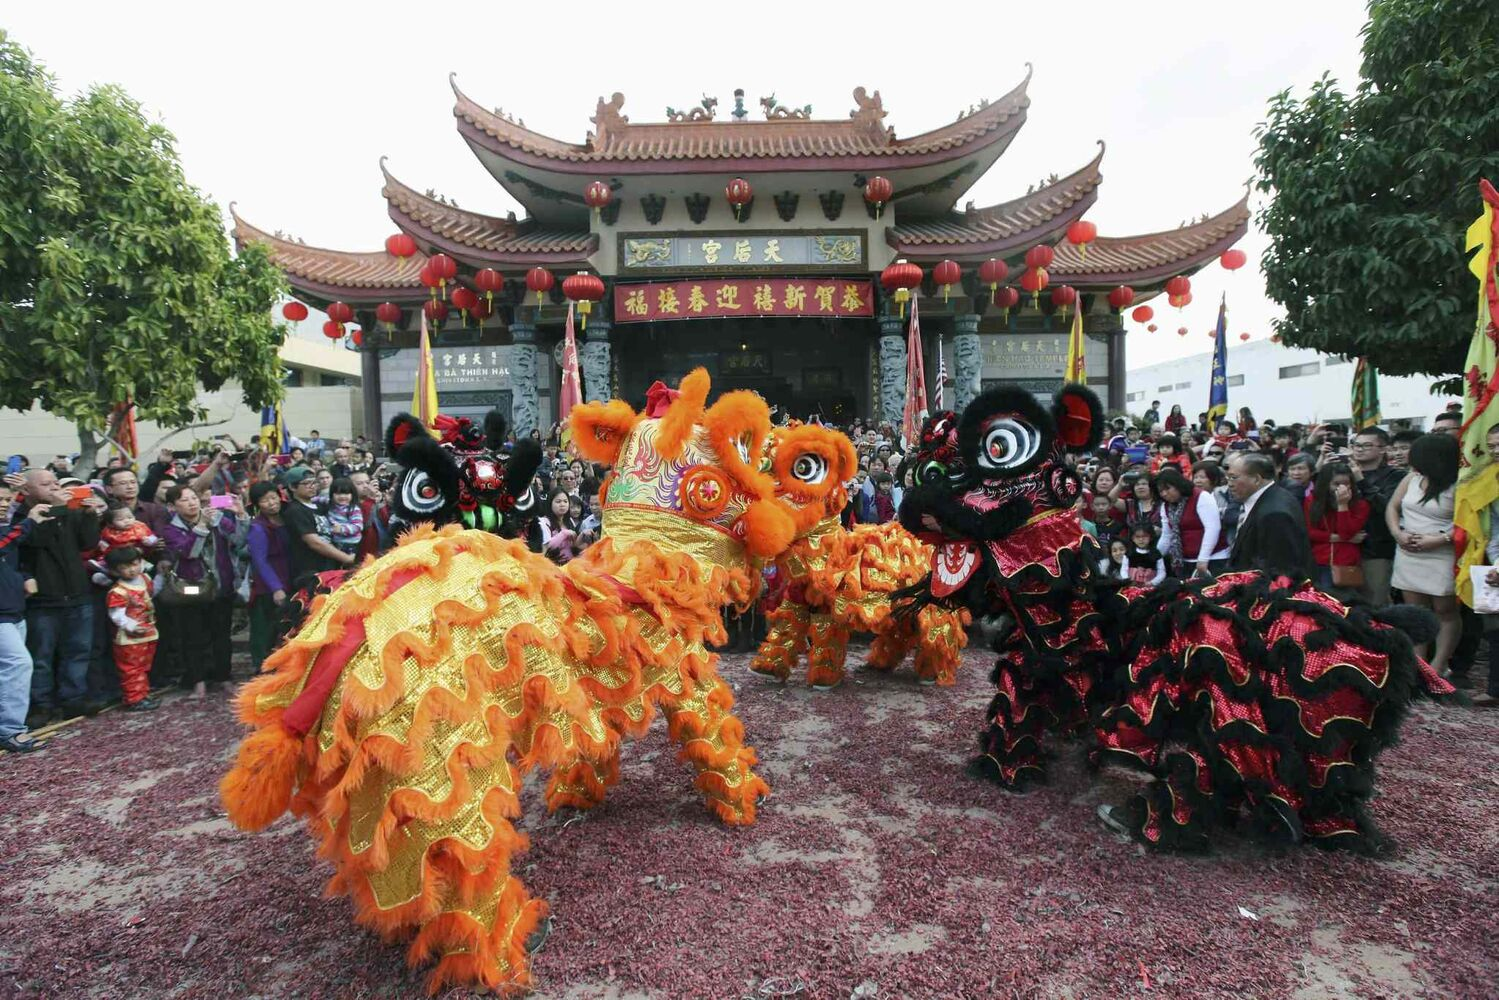 People watch a dragon dance at the Thien Hau temple in Los Angeles, on Friday, Jan. 31, 2014.